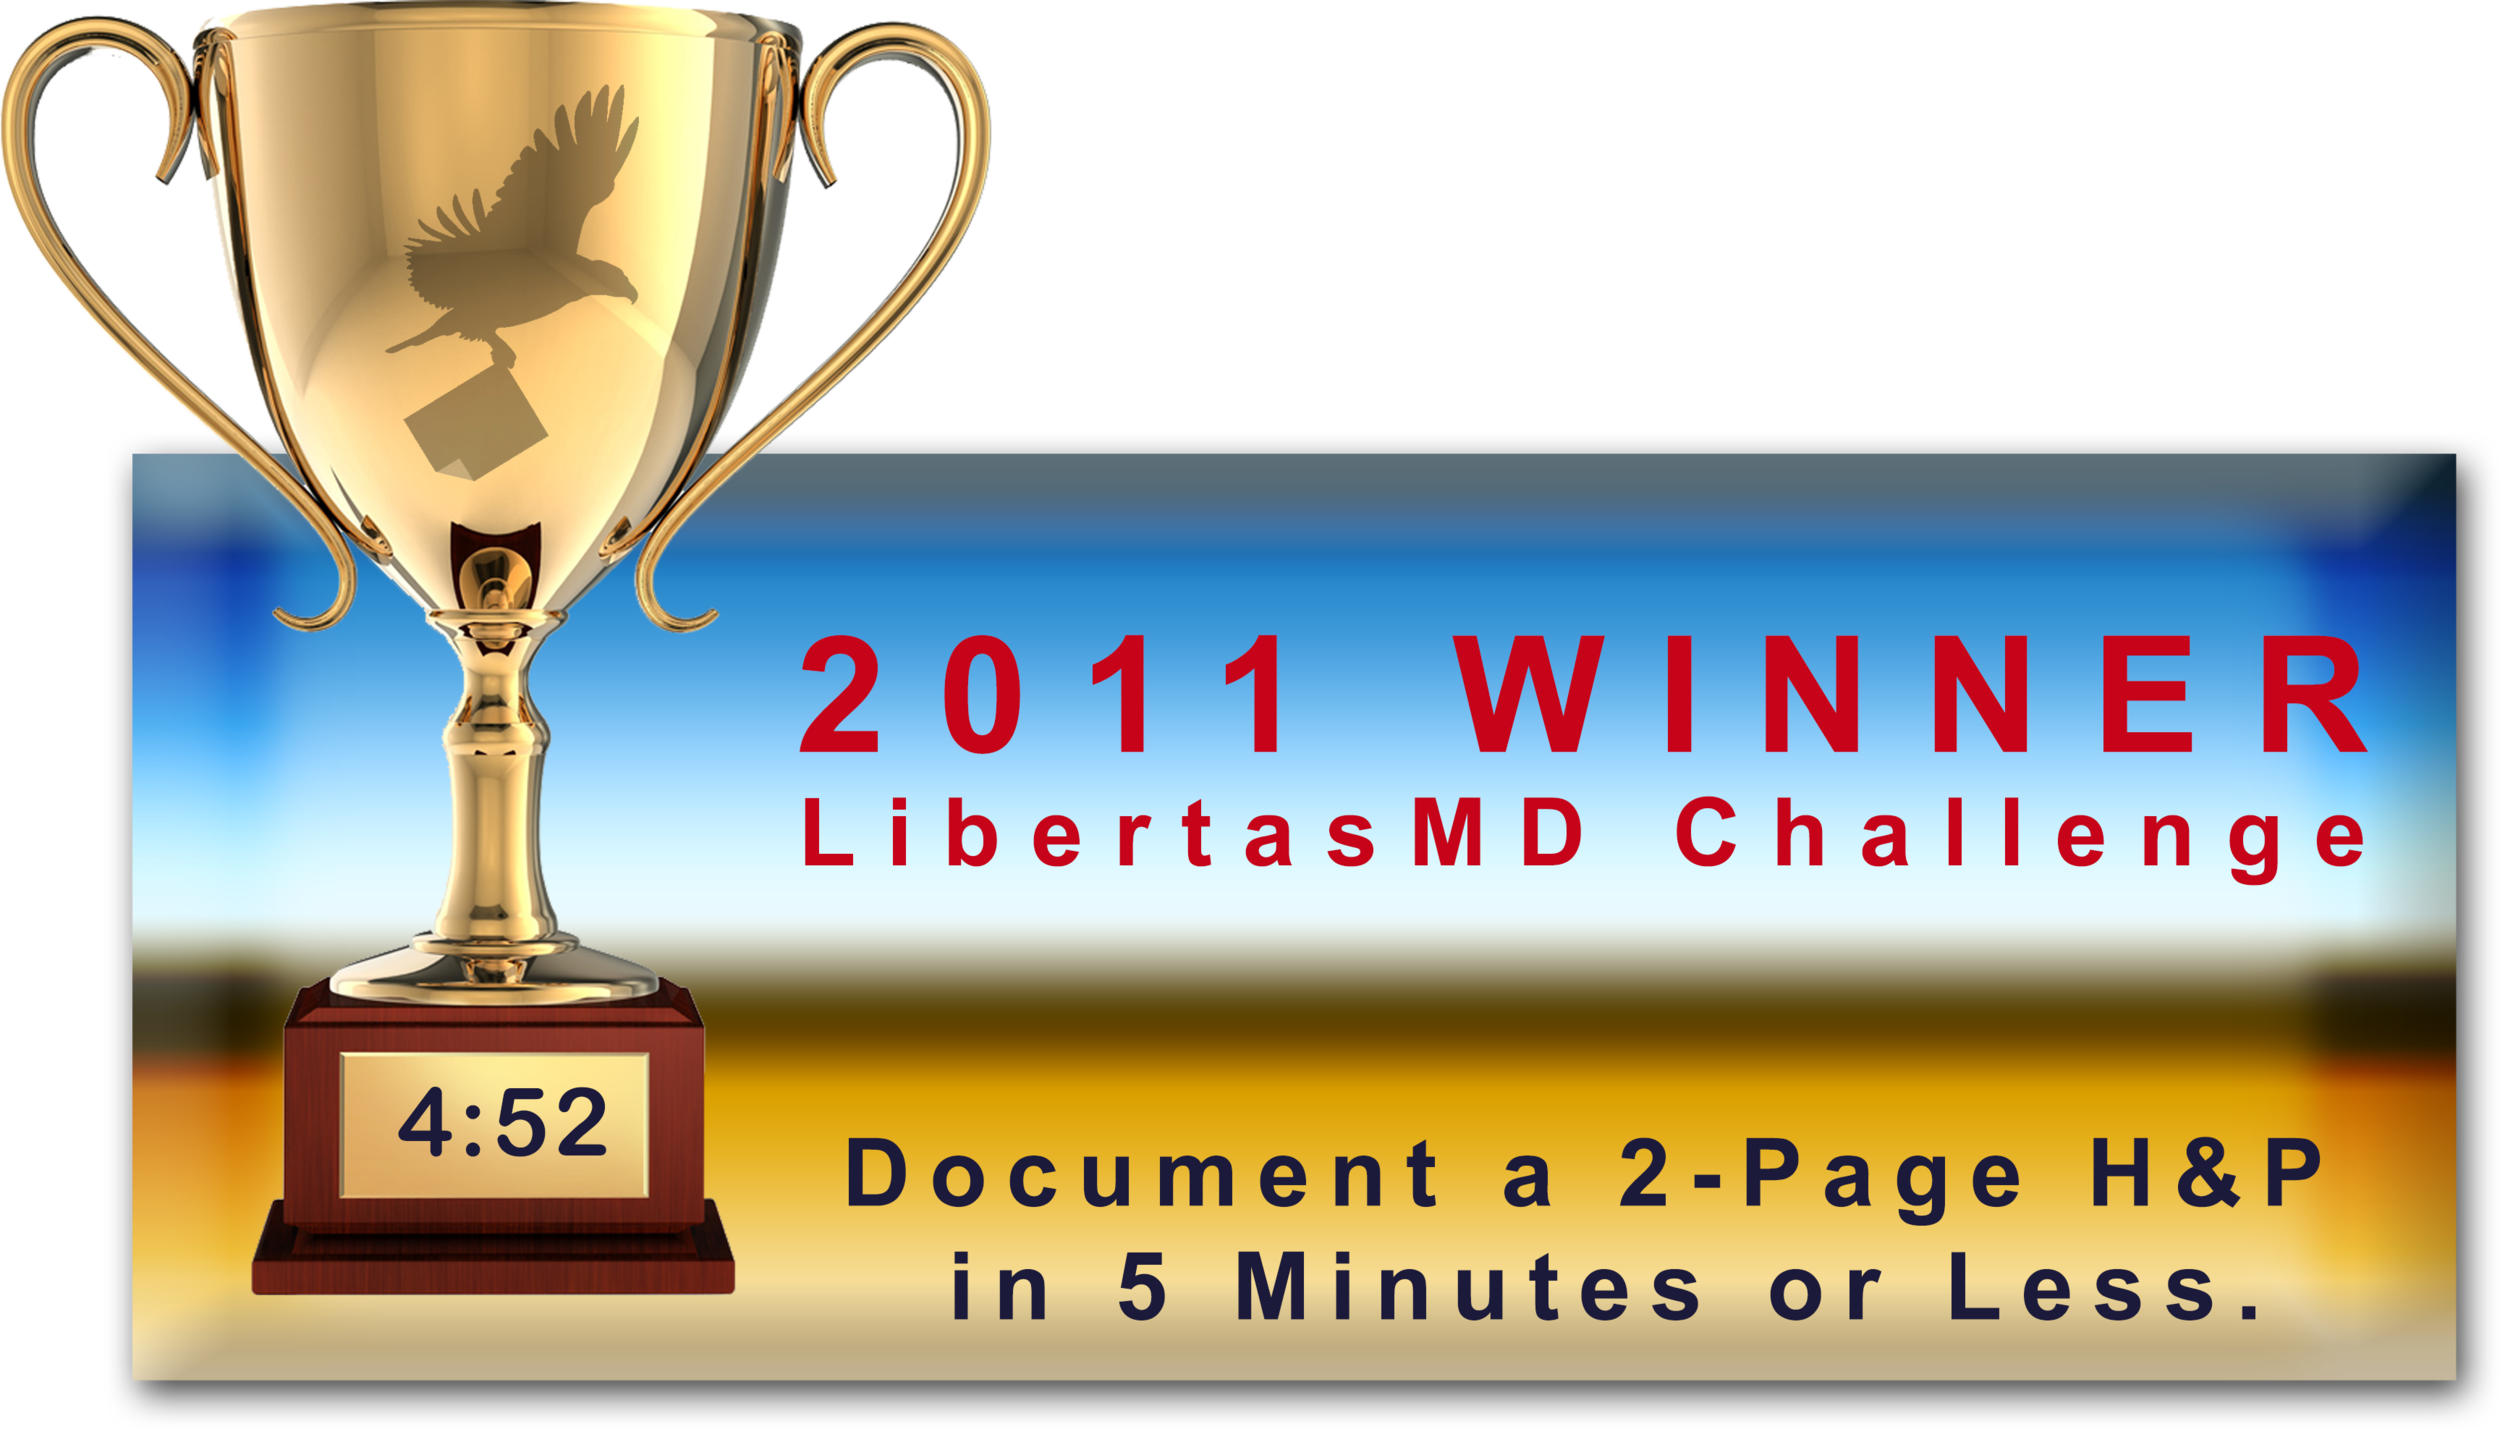 The EHR experts at LibertasMD evaluated more than 20 EHR products and awarded HEALTHeSTATE the Challenge Cup for fastest patient data entry.